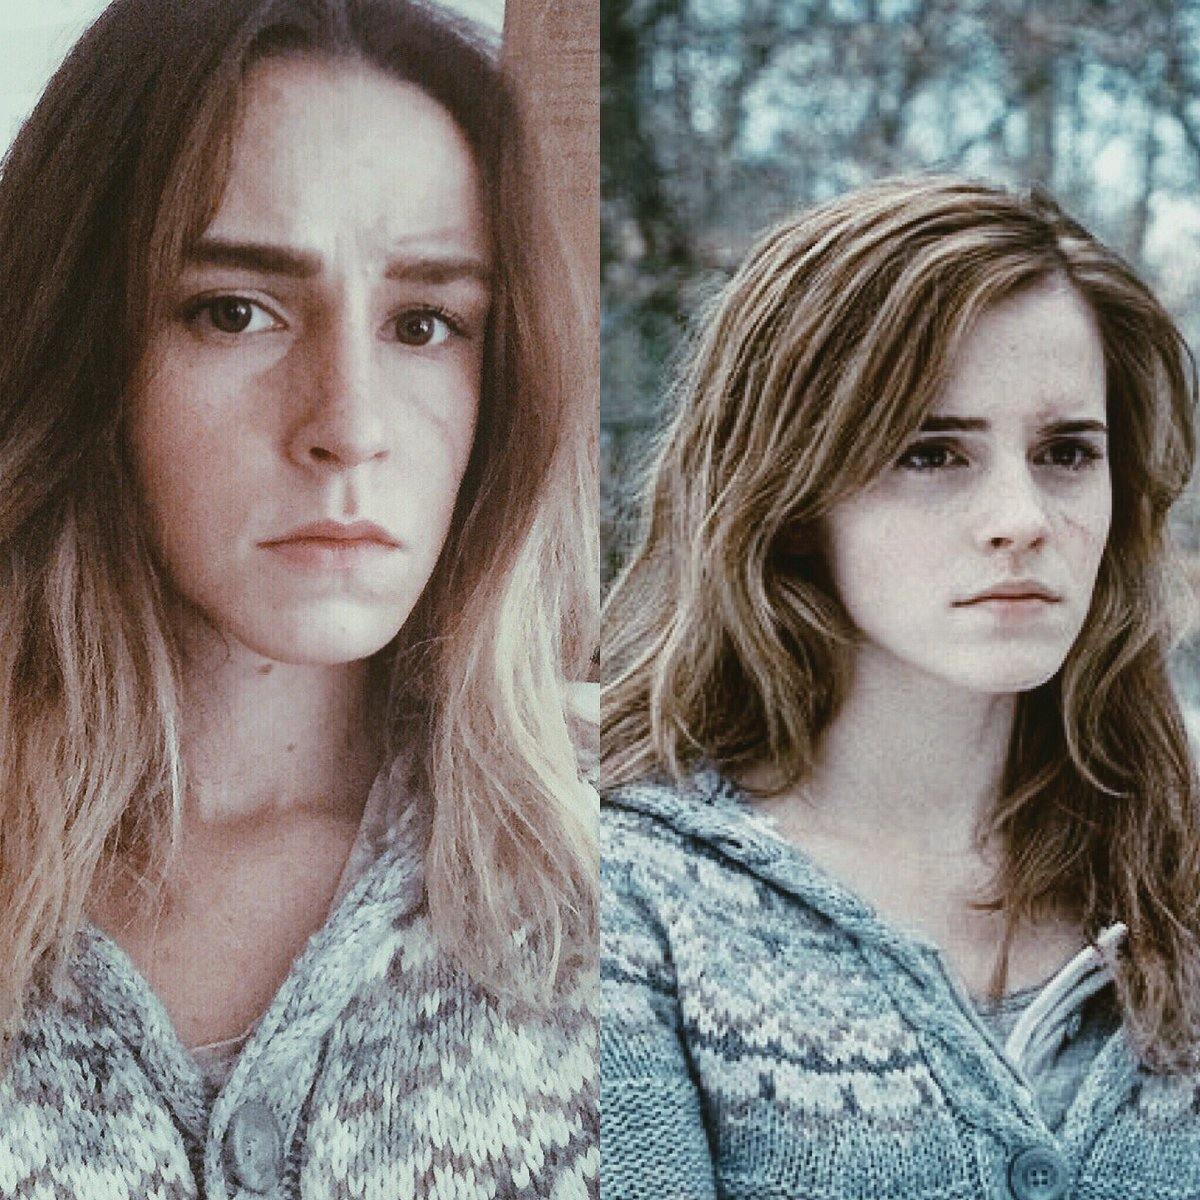 My cosplay make up side by side of Hermione #cosplayer #DeathlyHallows @jk_rowling @EmmaWatson<br>http://pic.twitter.com/EFmYBdMn59